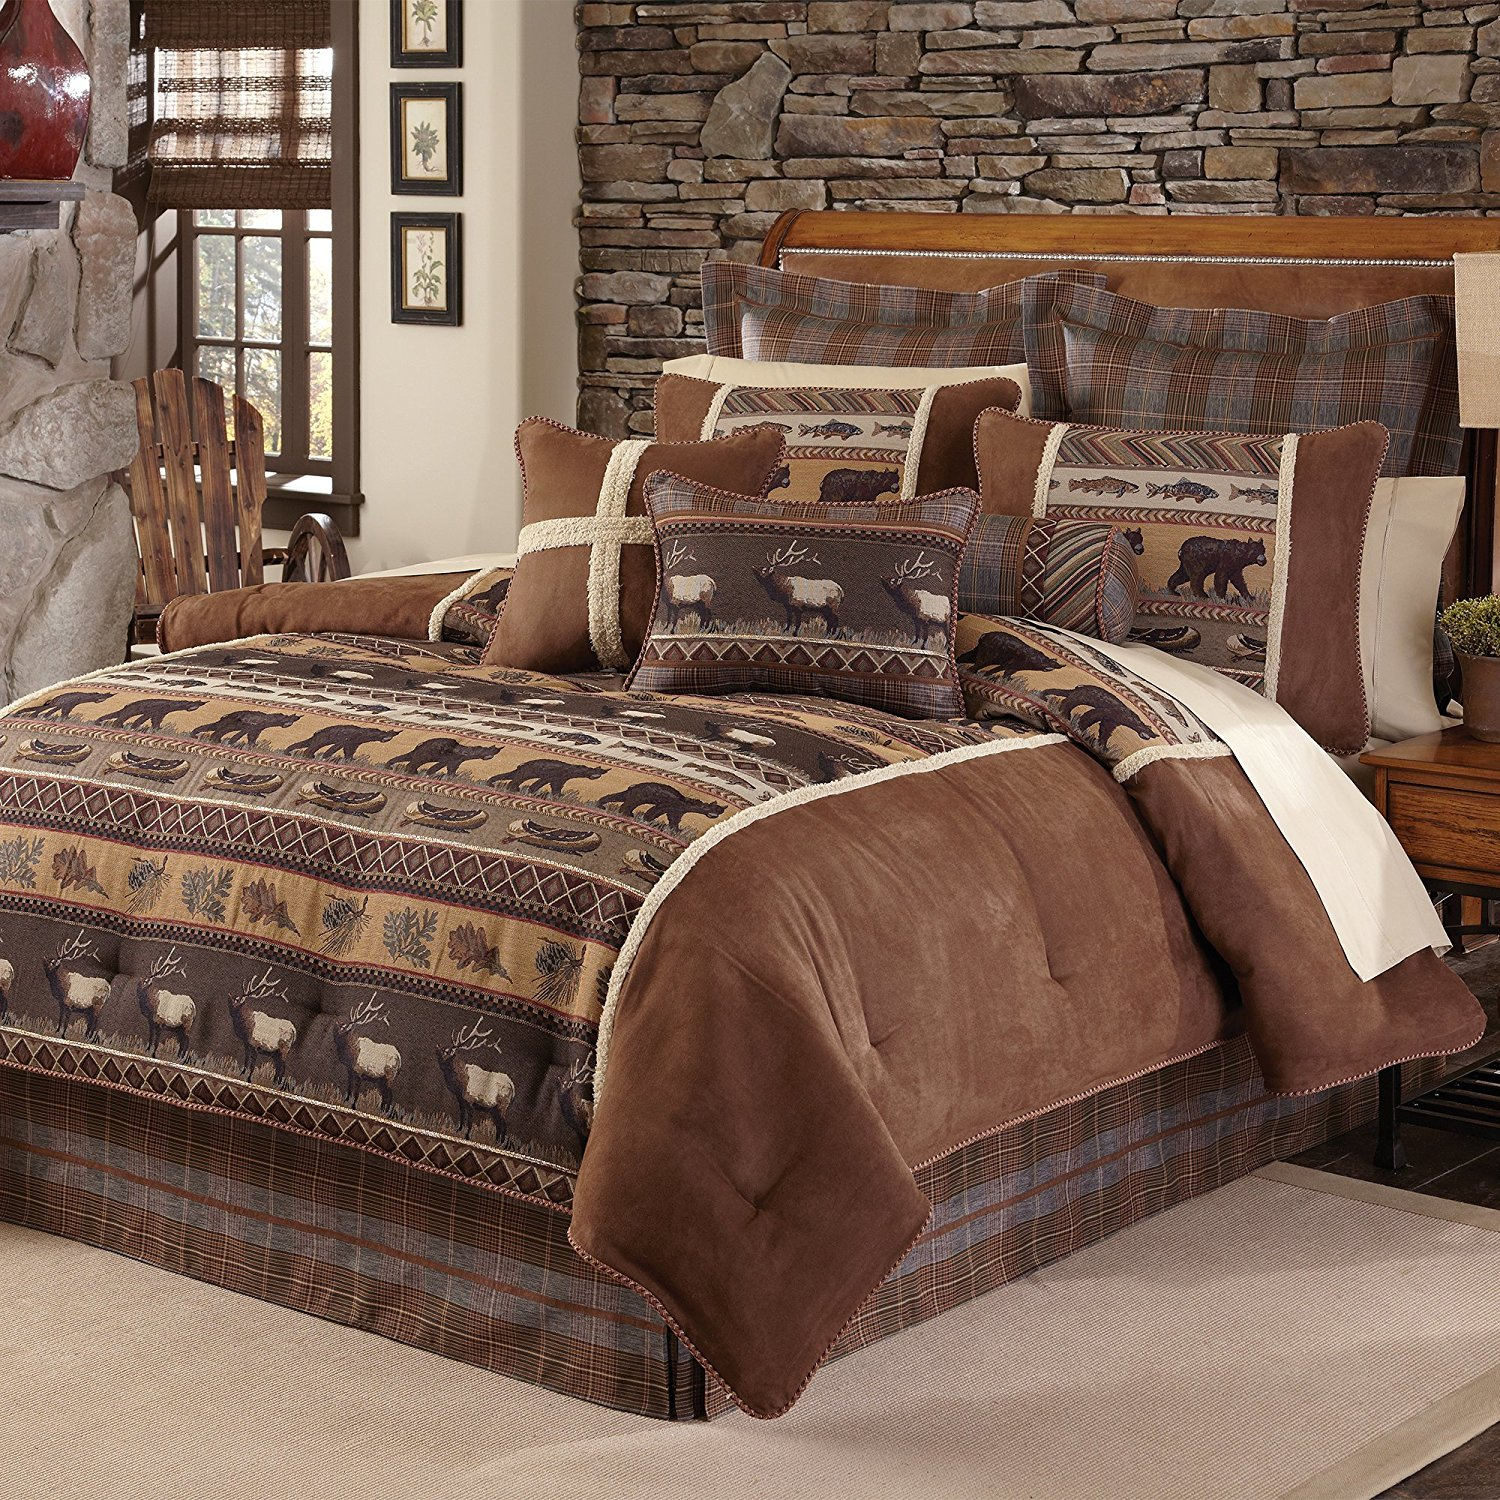 4 Piece Brown Cabin Themed Comforter Queen Set, Lodge Bedding Bears Fish Canoe Deer Forest Leaves Southwest Pattern Native American Rustic Animal Country, Polyester